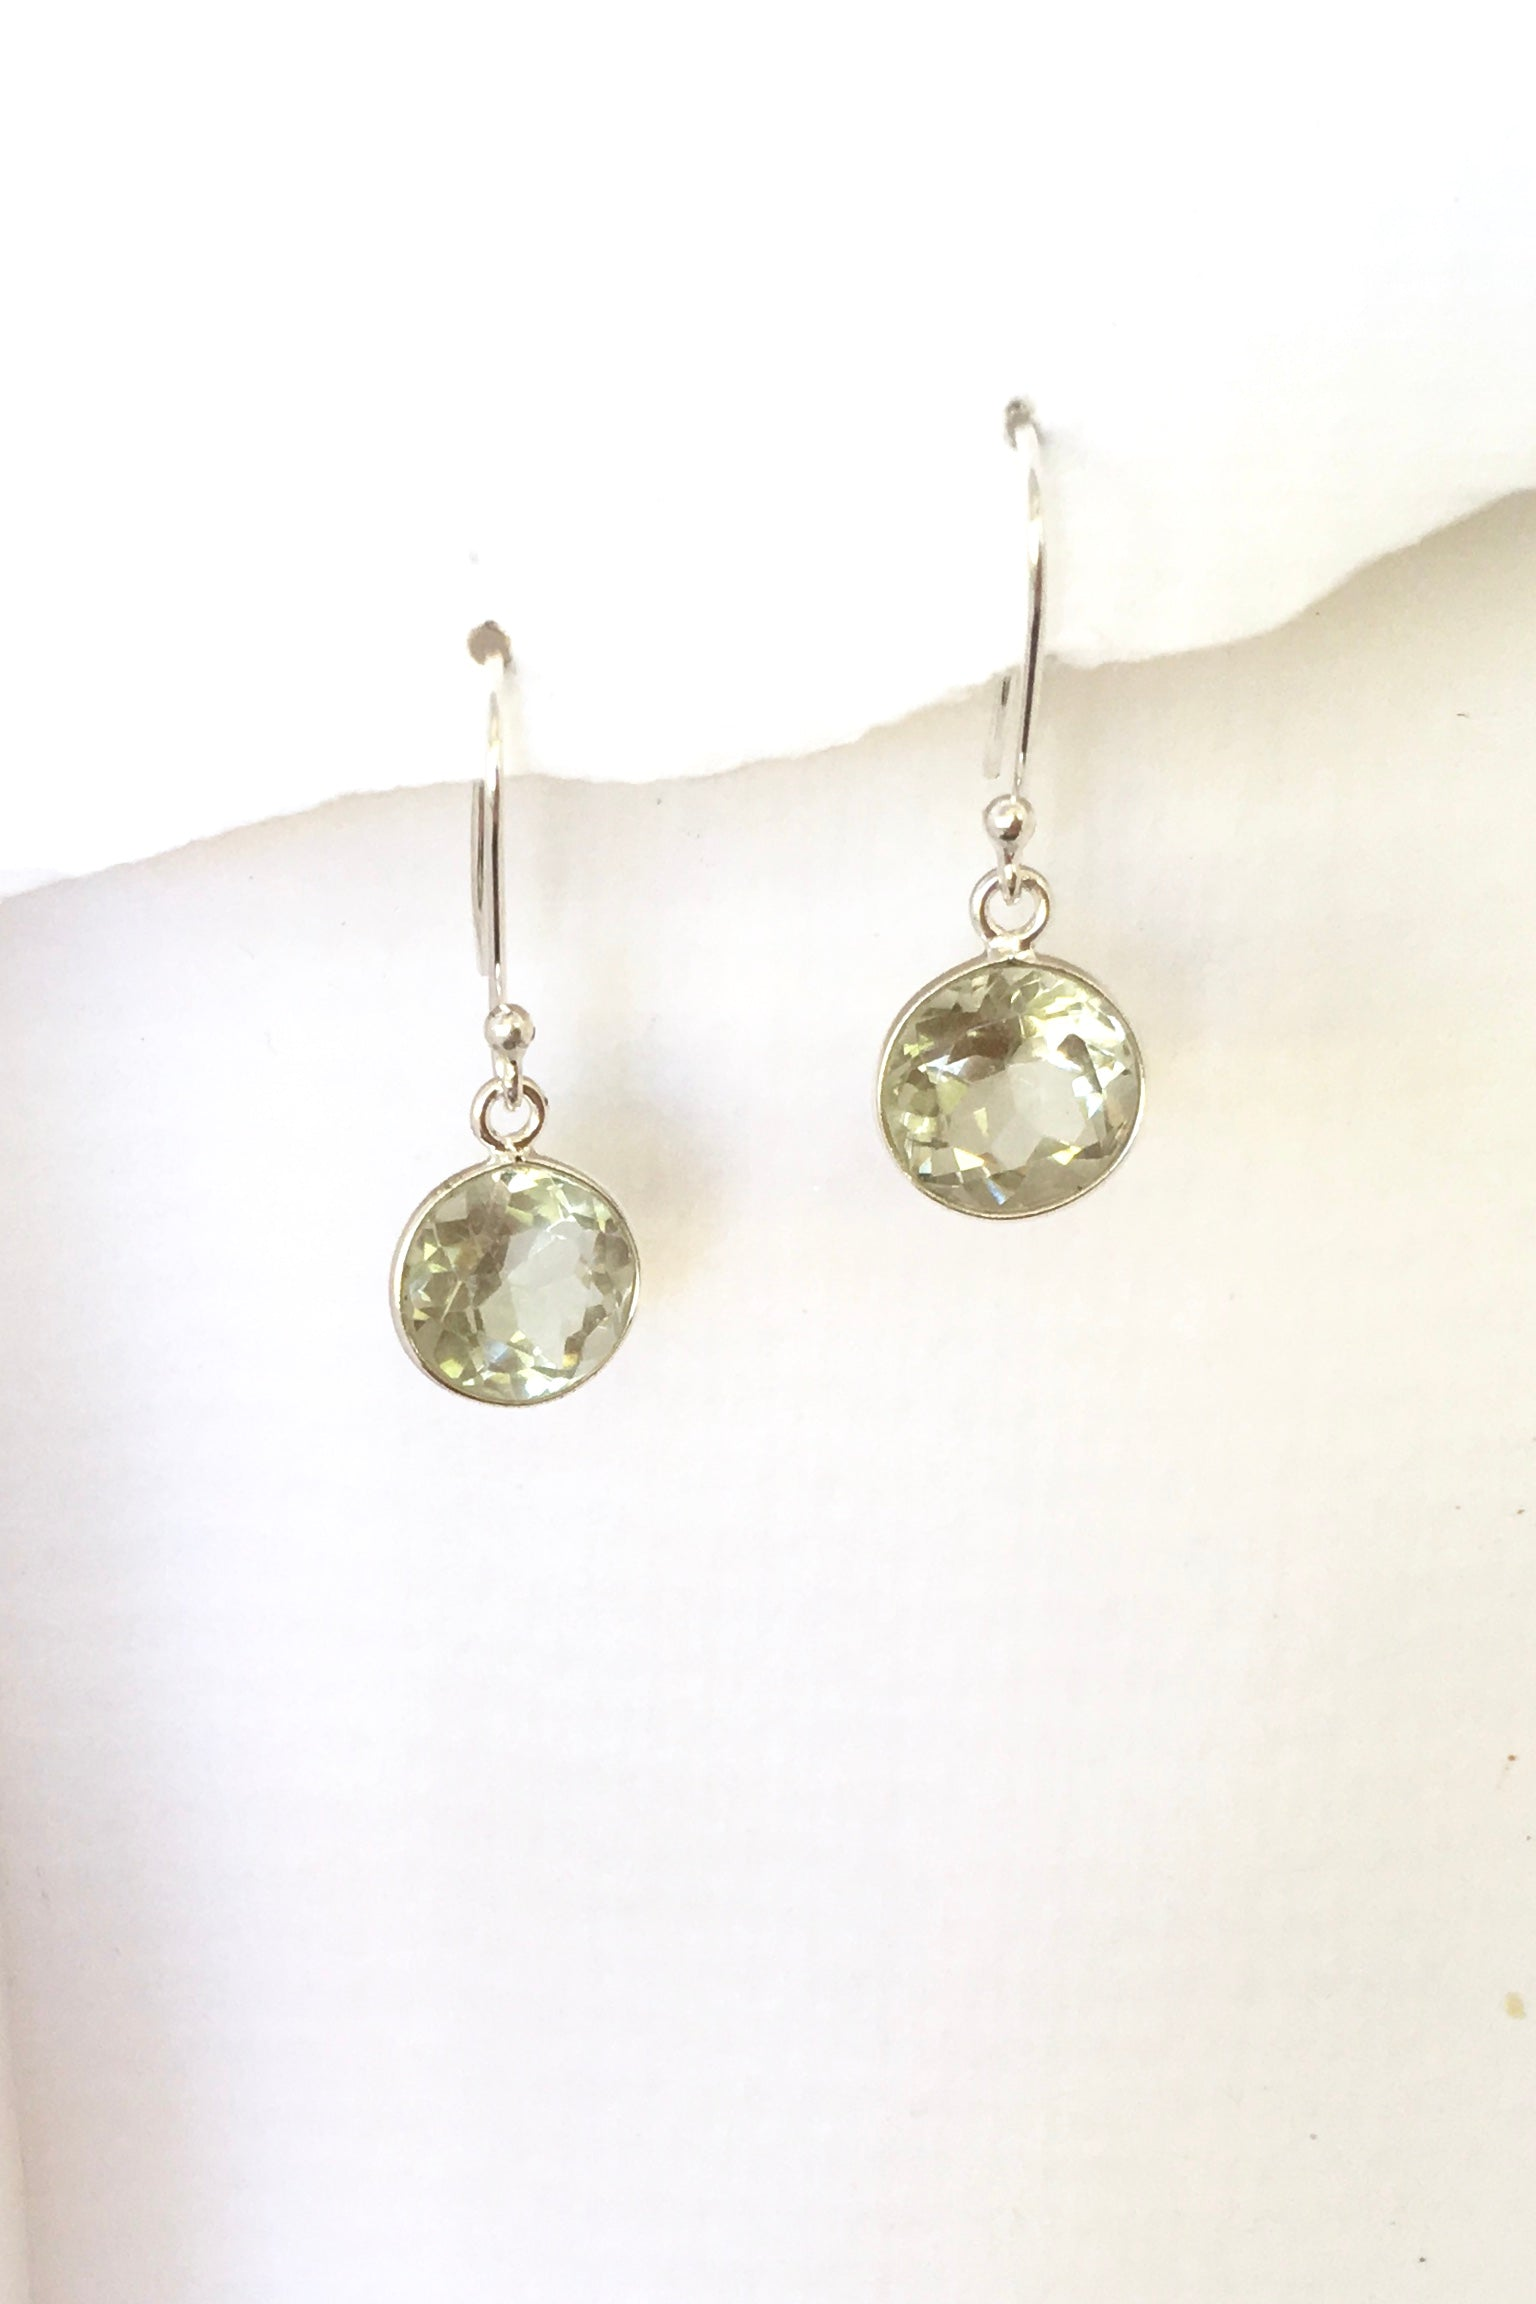 Green Amethyst and sterling silver delicate modern spectacle set earrings. Round cut faceted stone